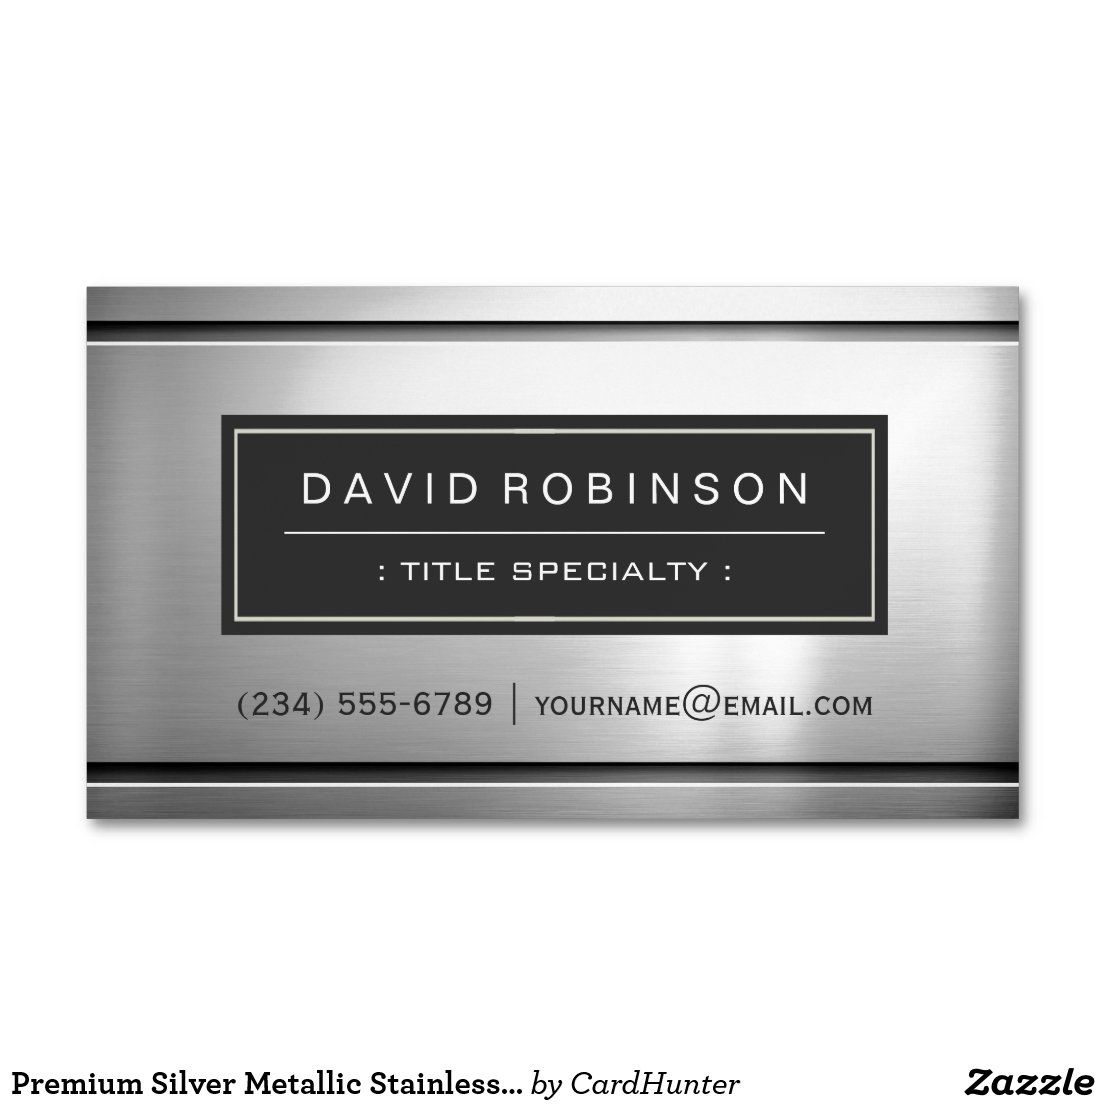 Premium Silver Metallic Stainless Steel Look Business Card Magnet Zazzle Com Construction Business Cards Magnetic Business Cards Business Cards